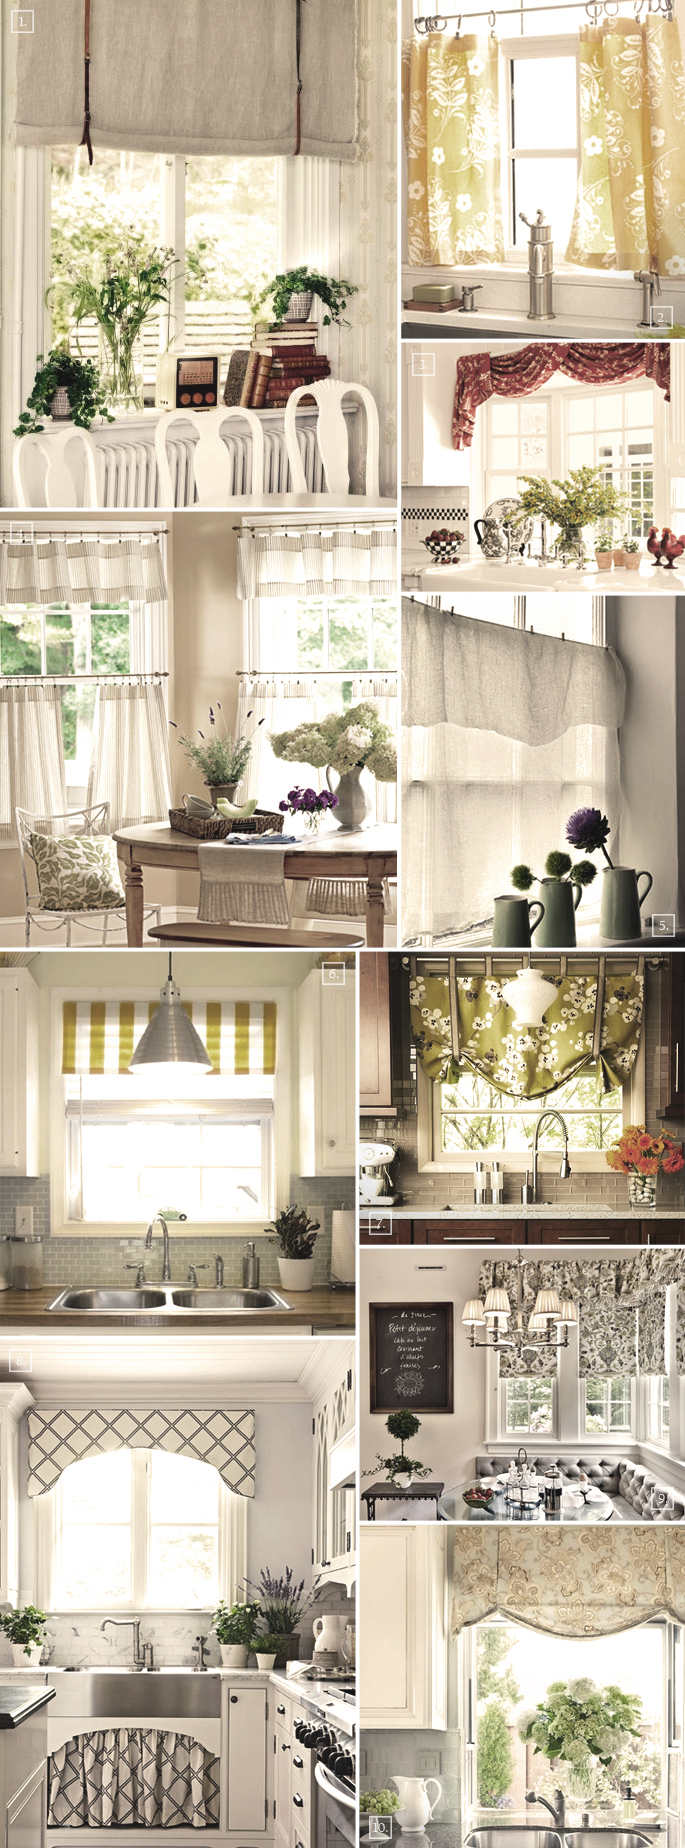 Decorating The Windows With These Kitchen Curtain Ideas | Home ...